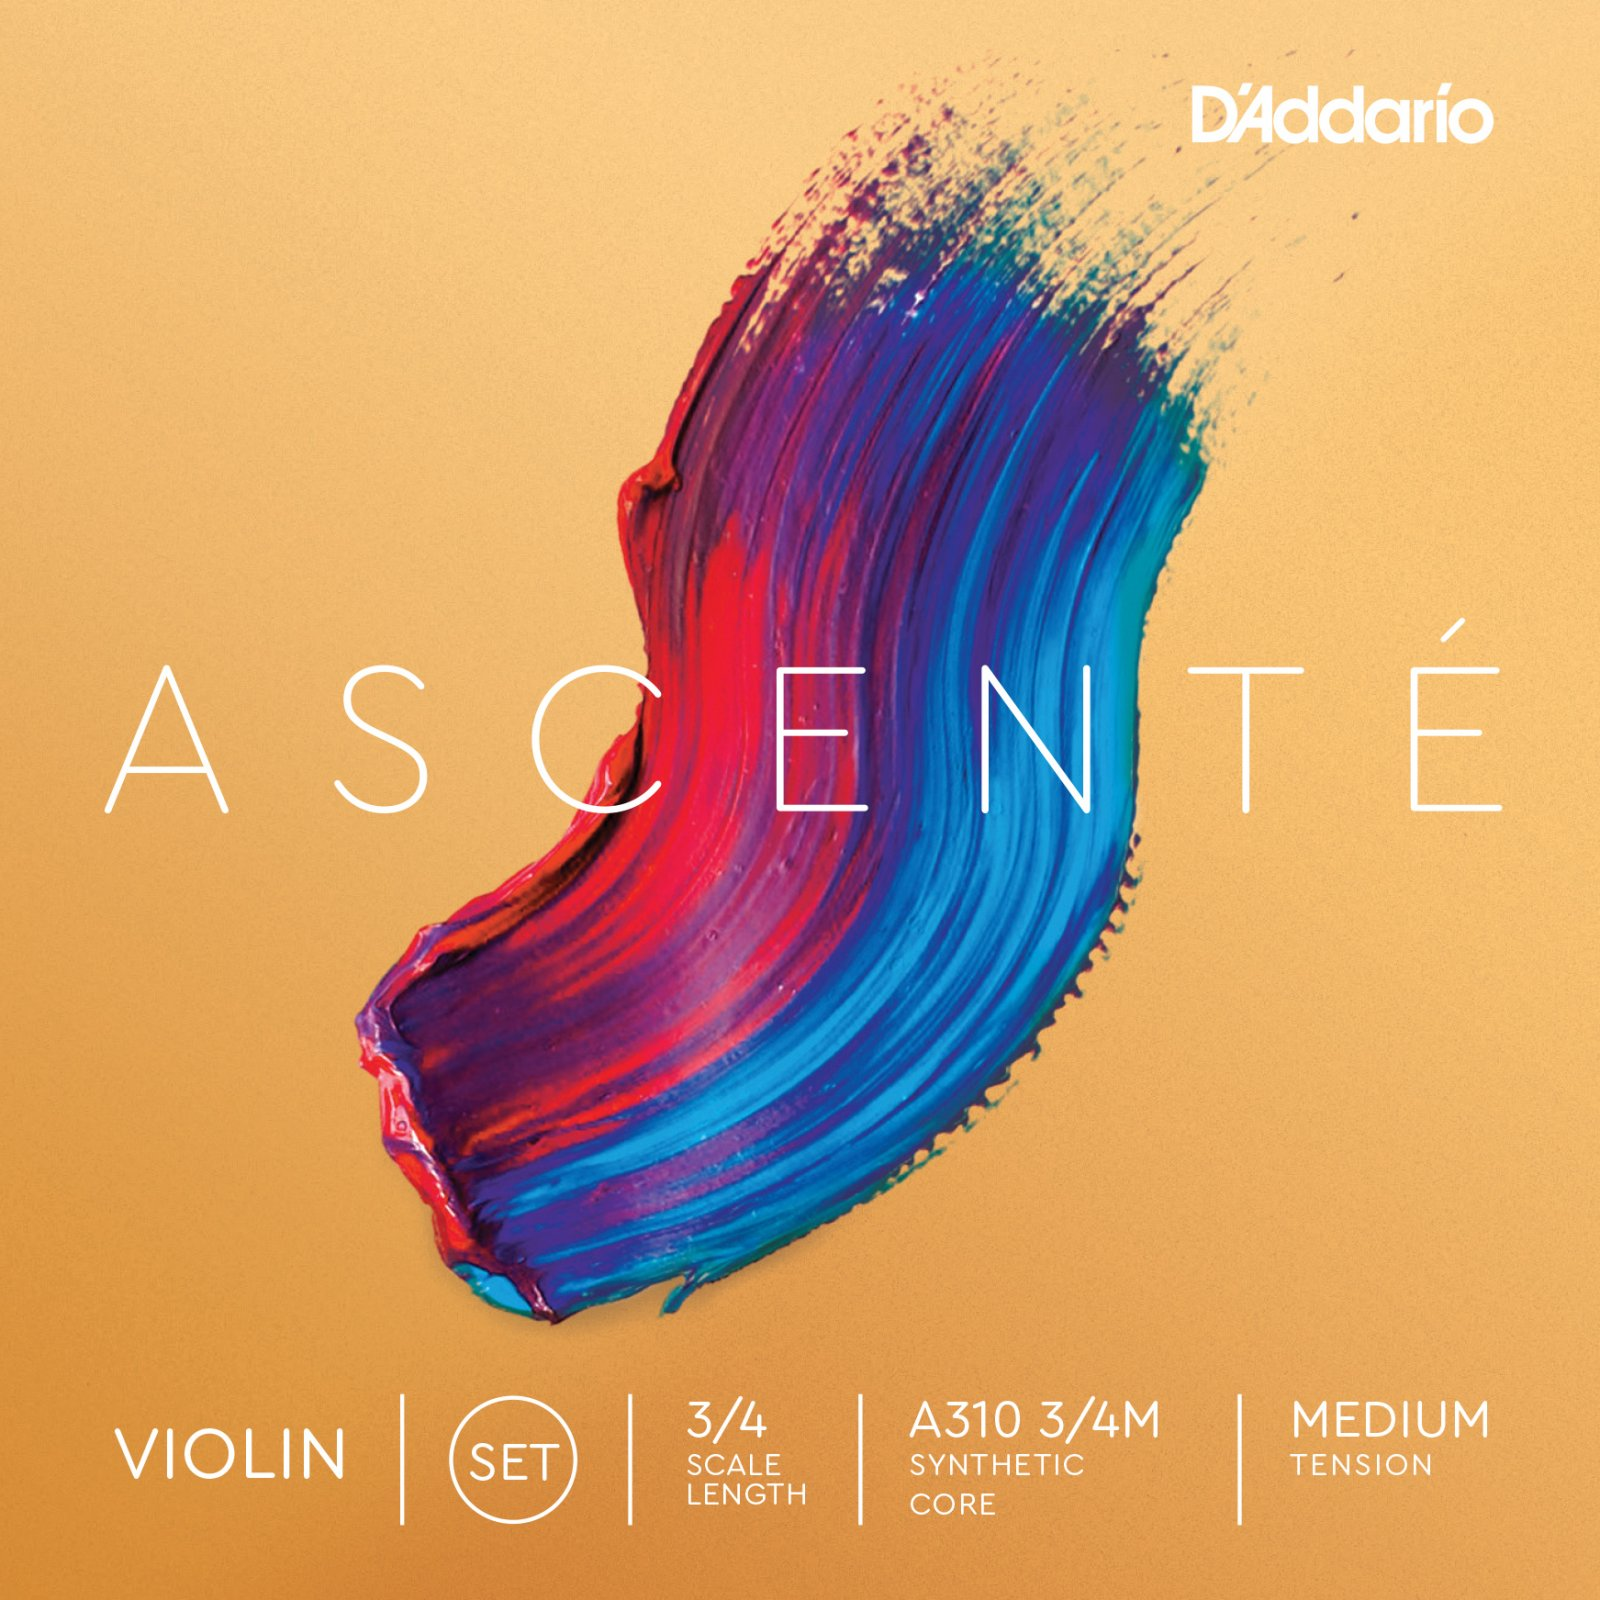 D'Addario Ascente Violin String Set Medium 3/4 (A310)